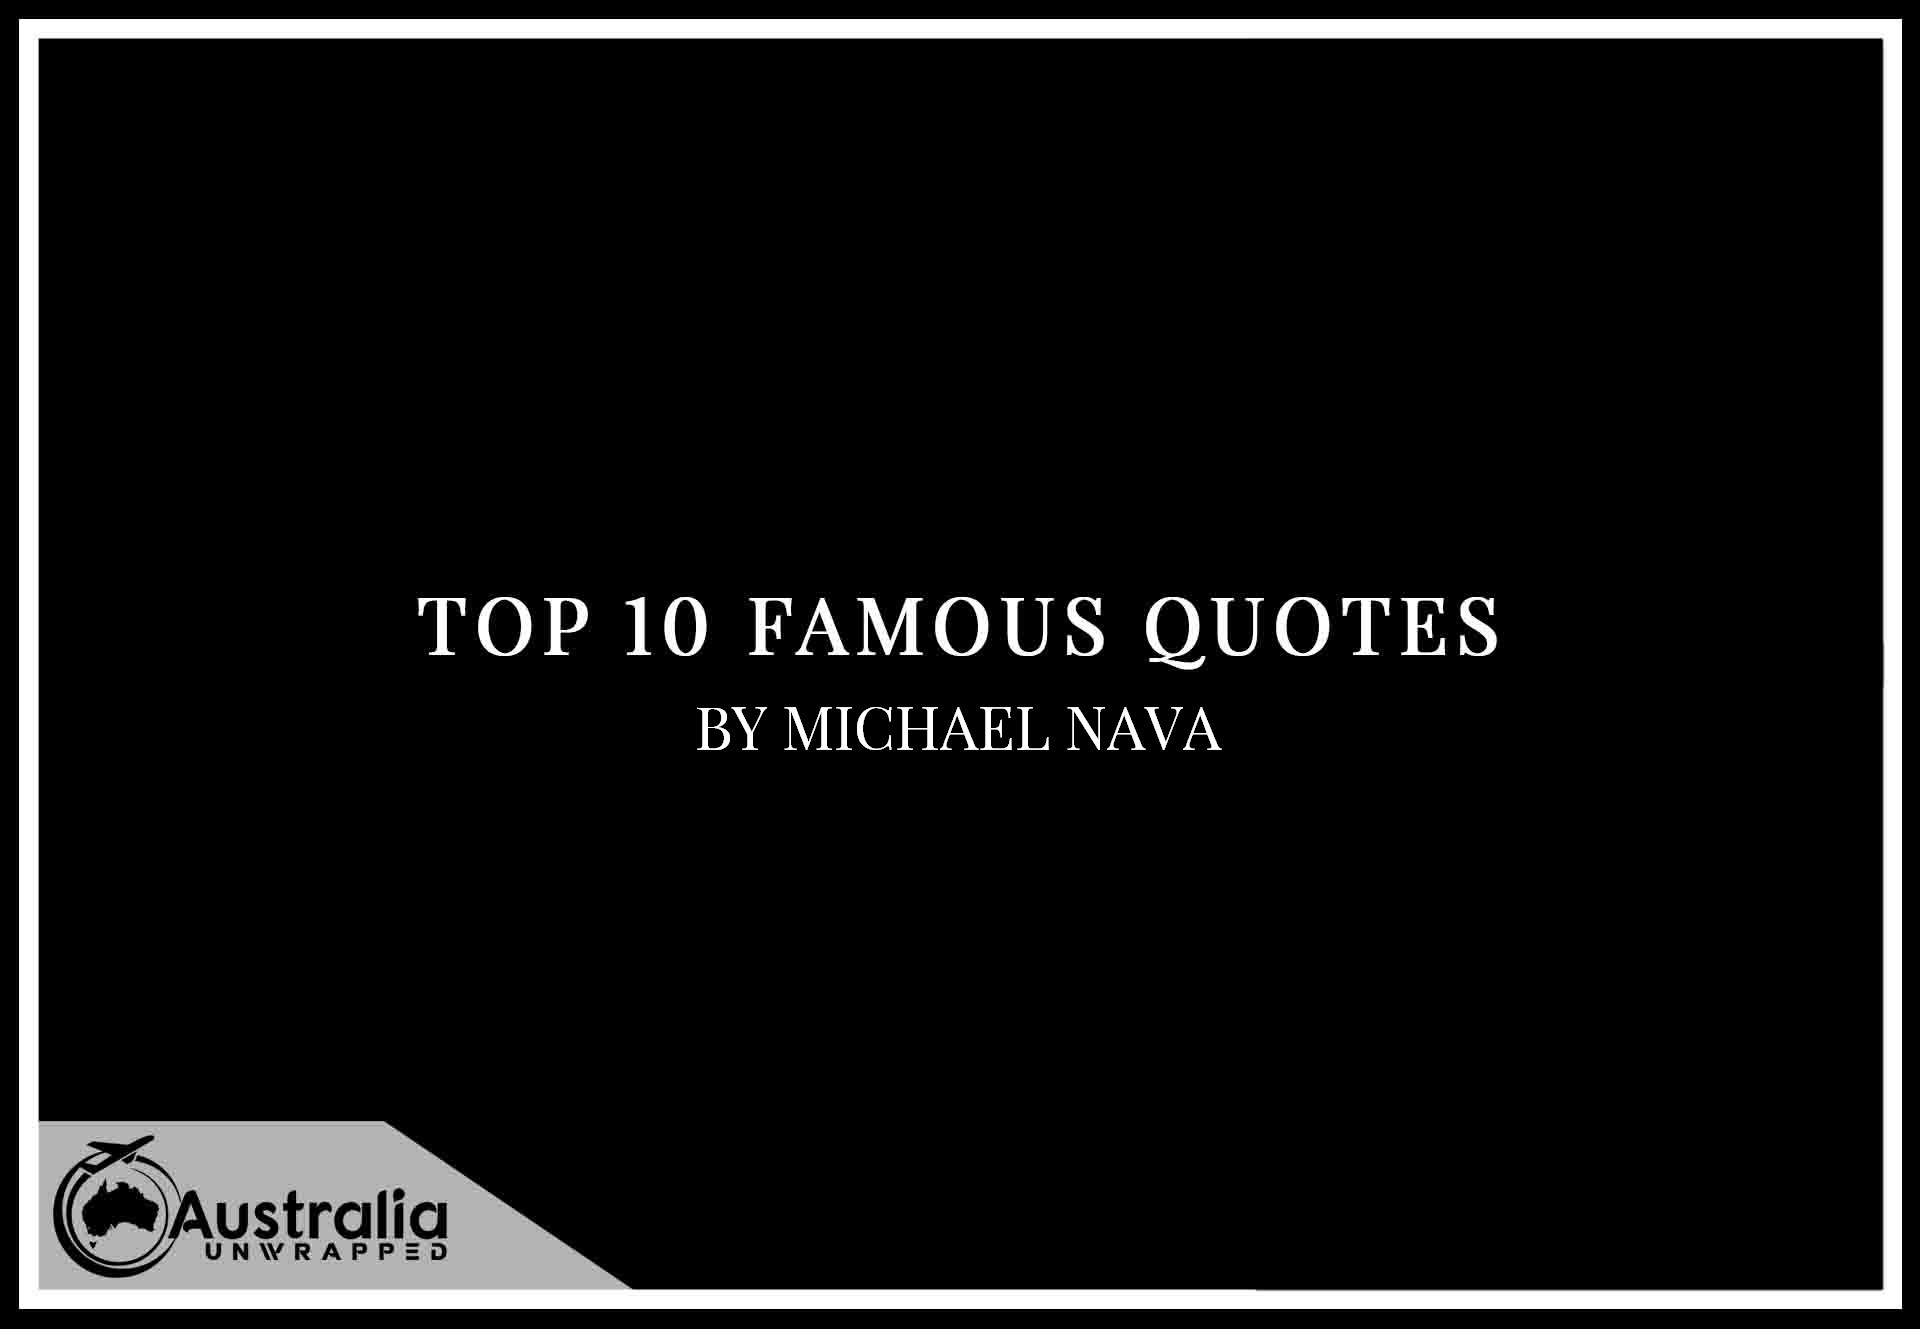 Top 10 Famous Quotes by Author Michael Nava